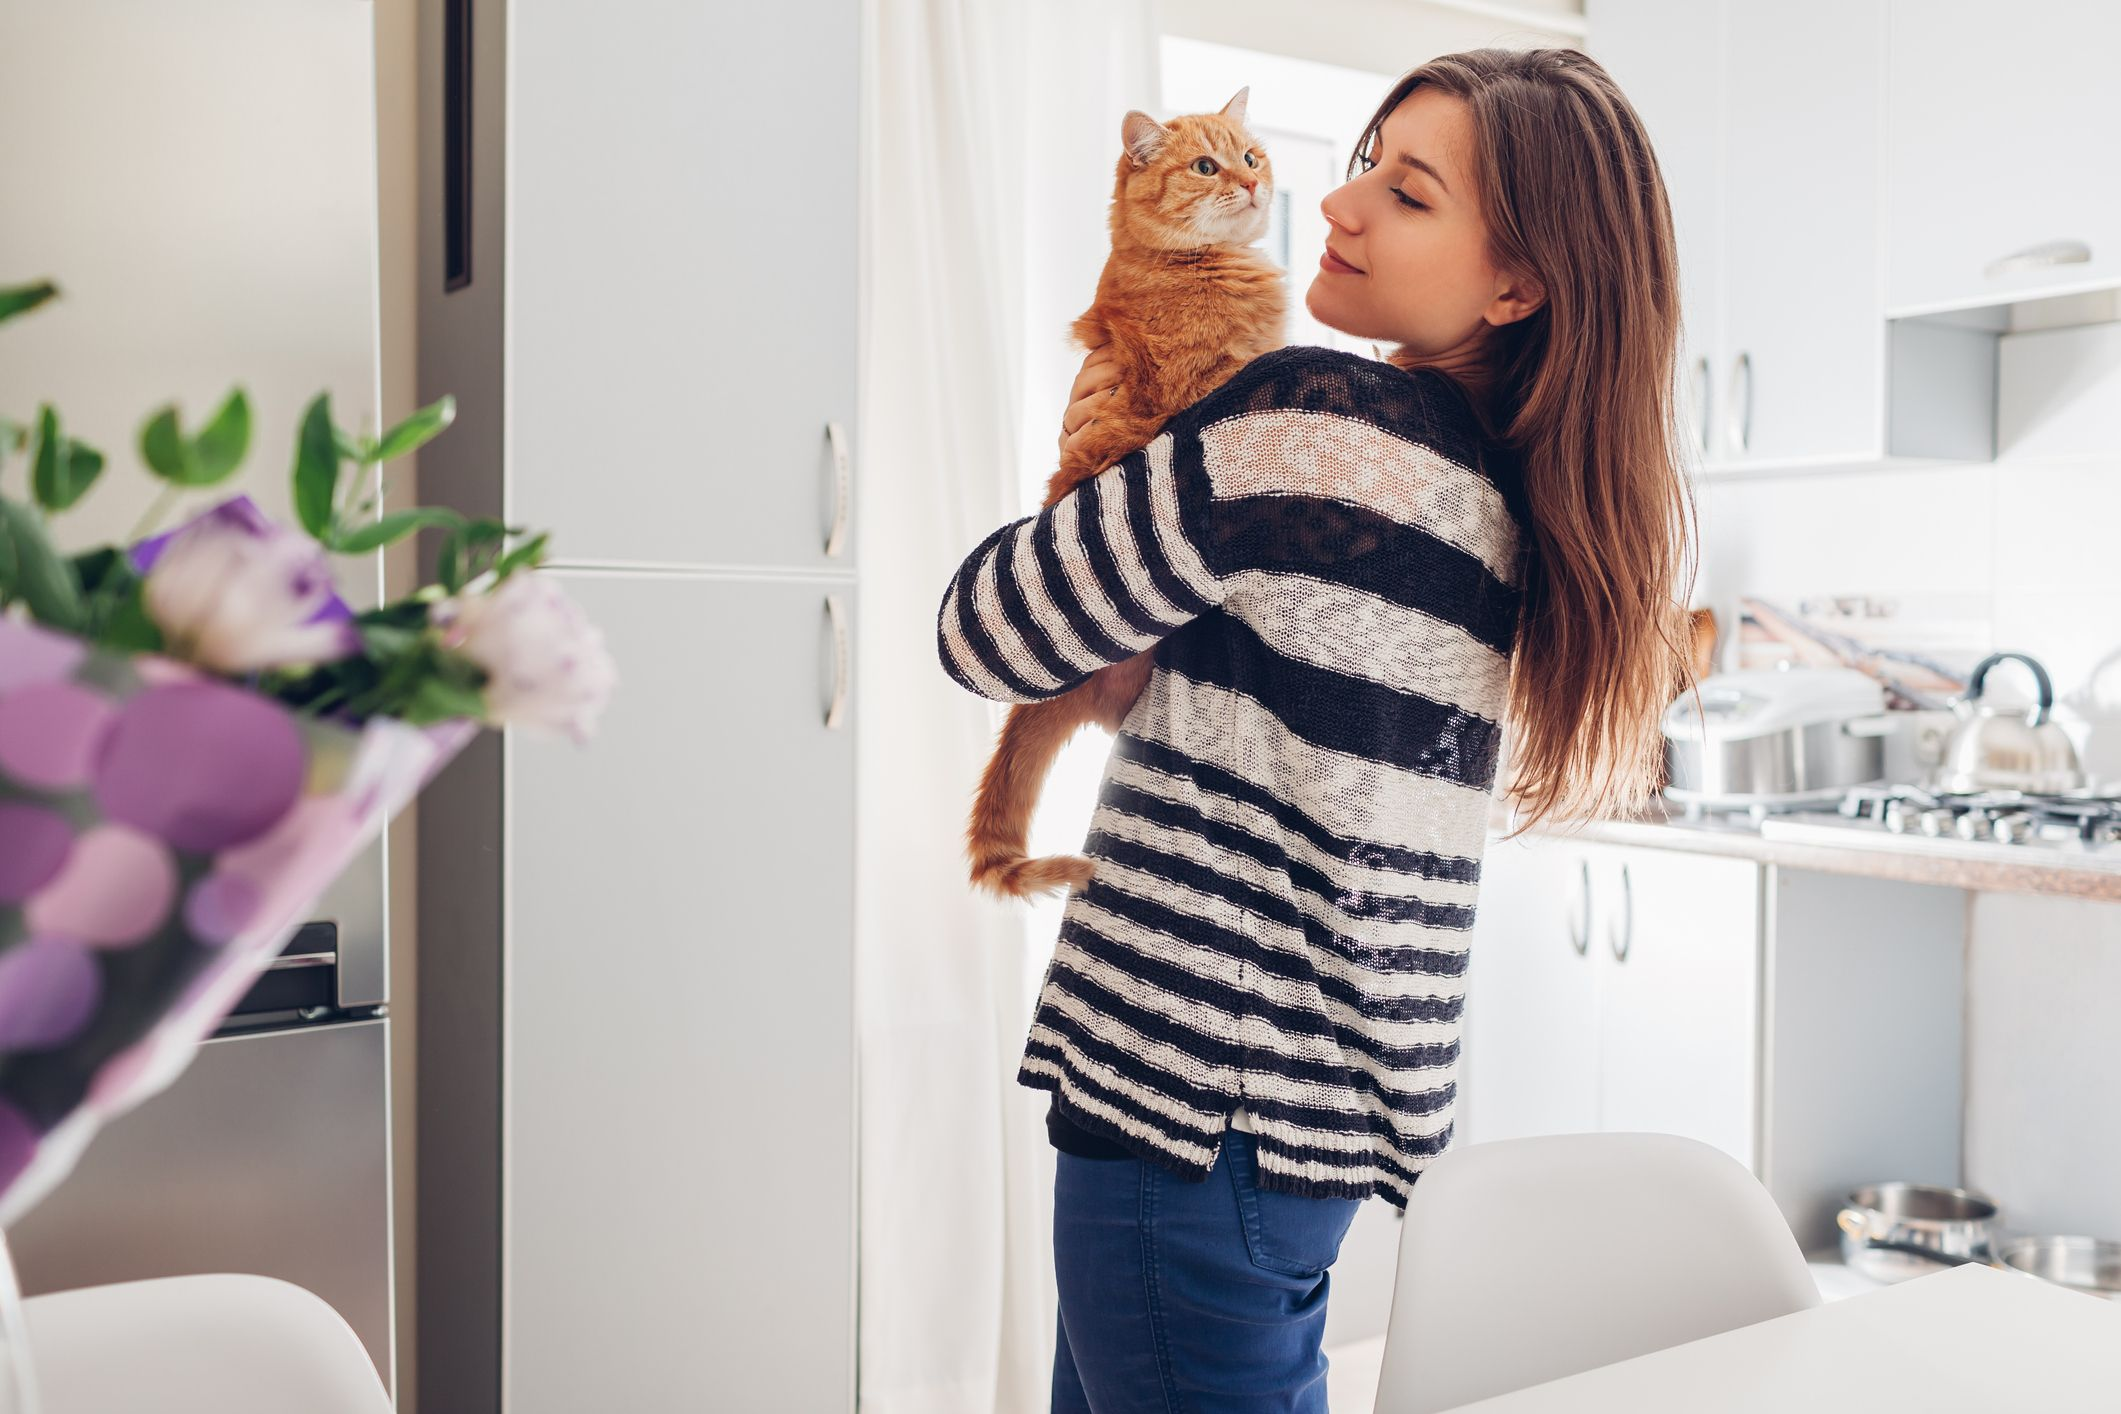 20 Reasons Why Cats Make the Best Pets - Facts About Cats